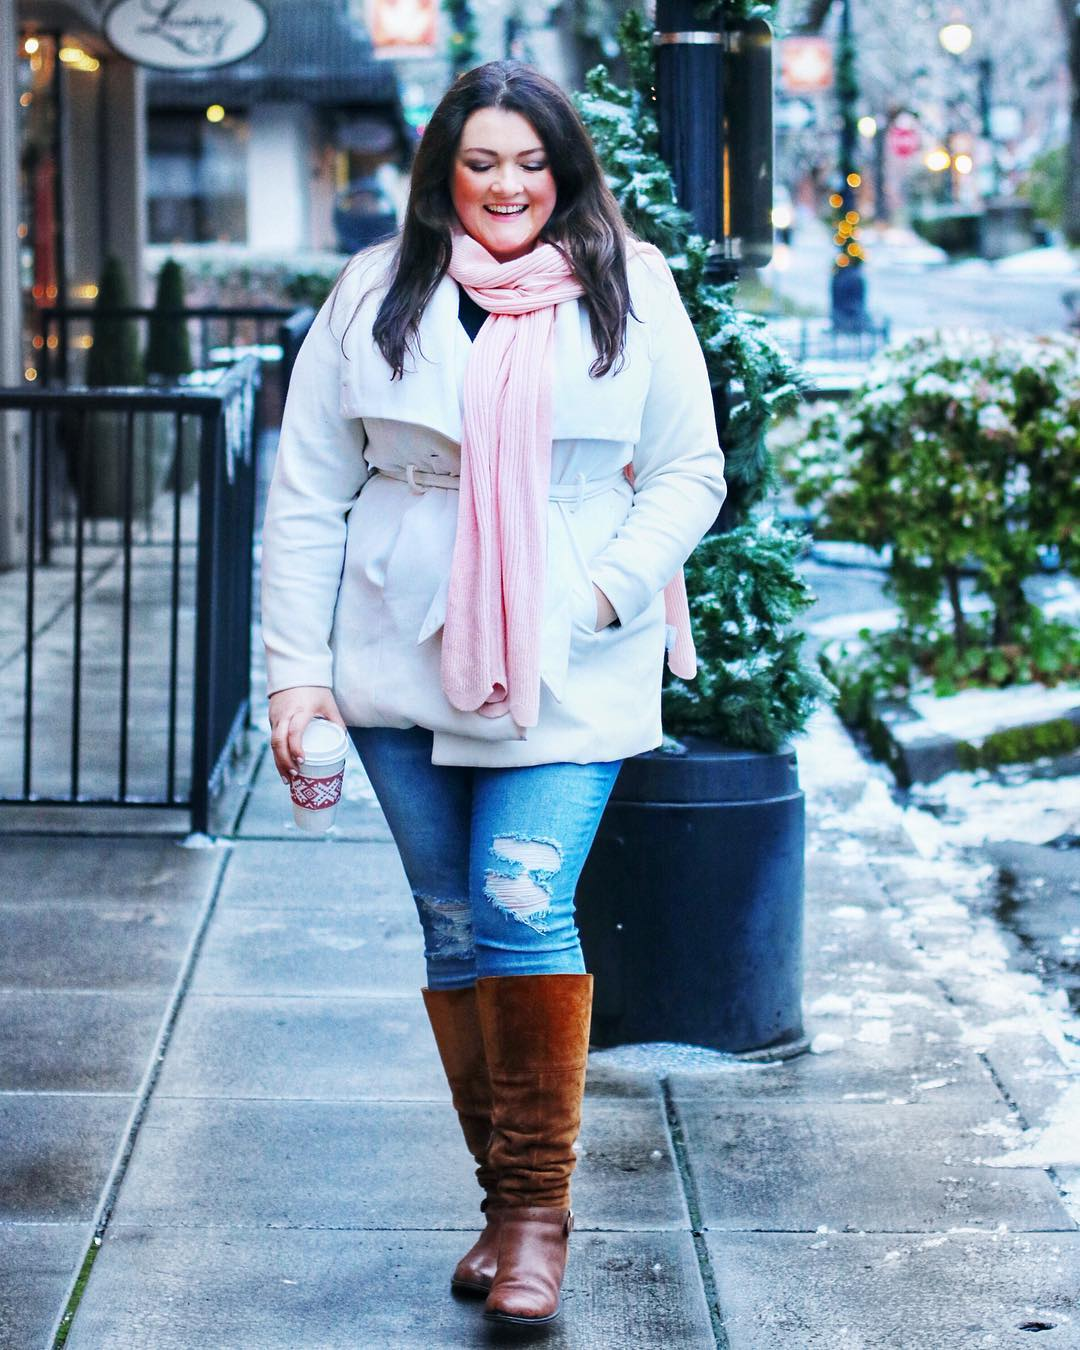 Top 24 Plus-Size Fashion Blogs to Follow in 2018 | thrEDIT